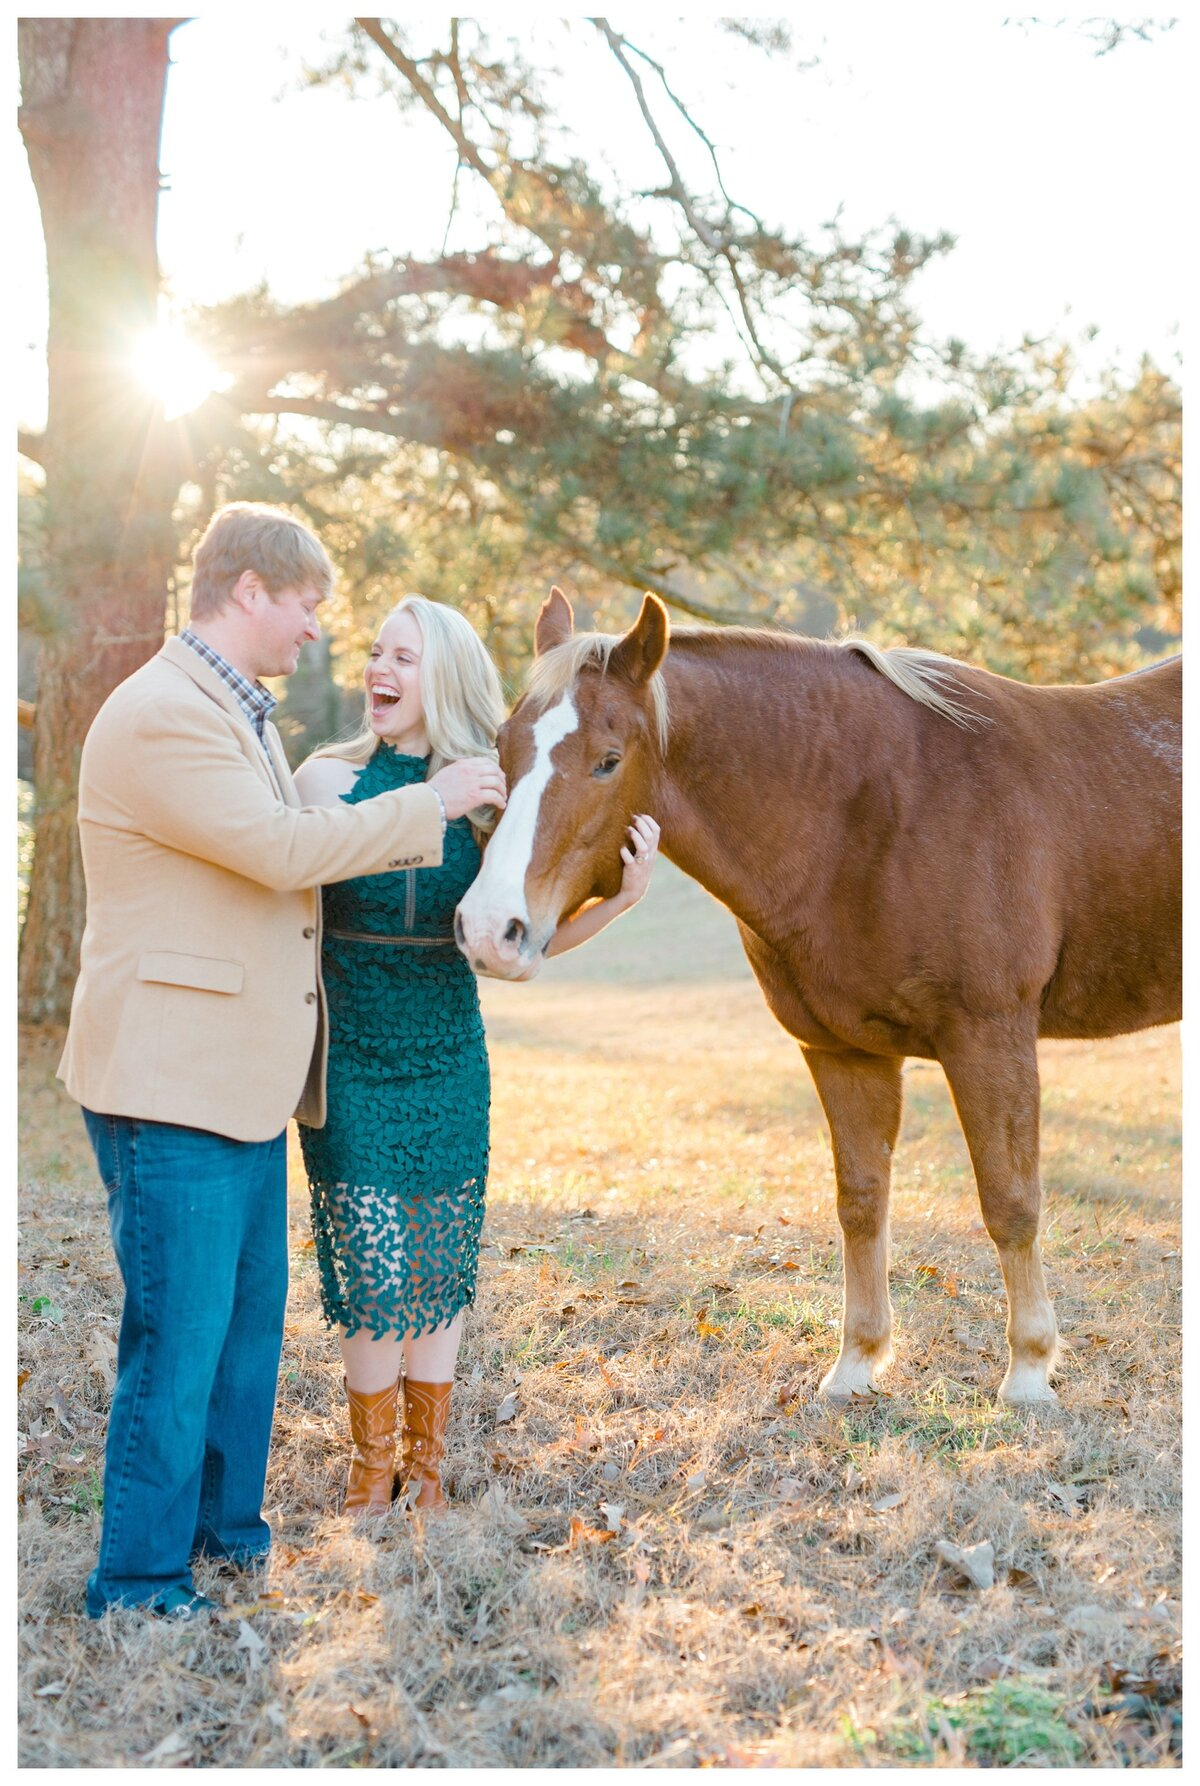 canady-engagements-atlanta-wedding-photographer-30